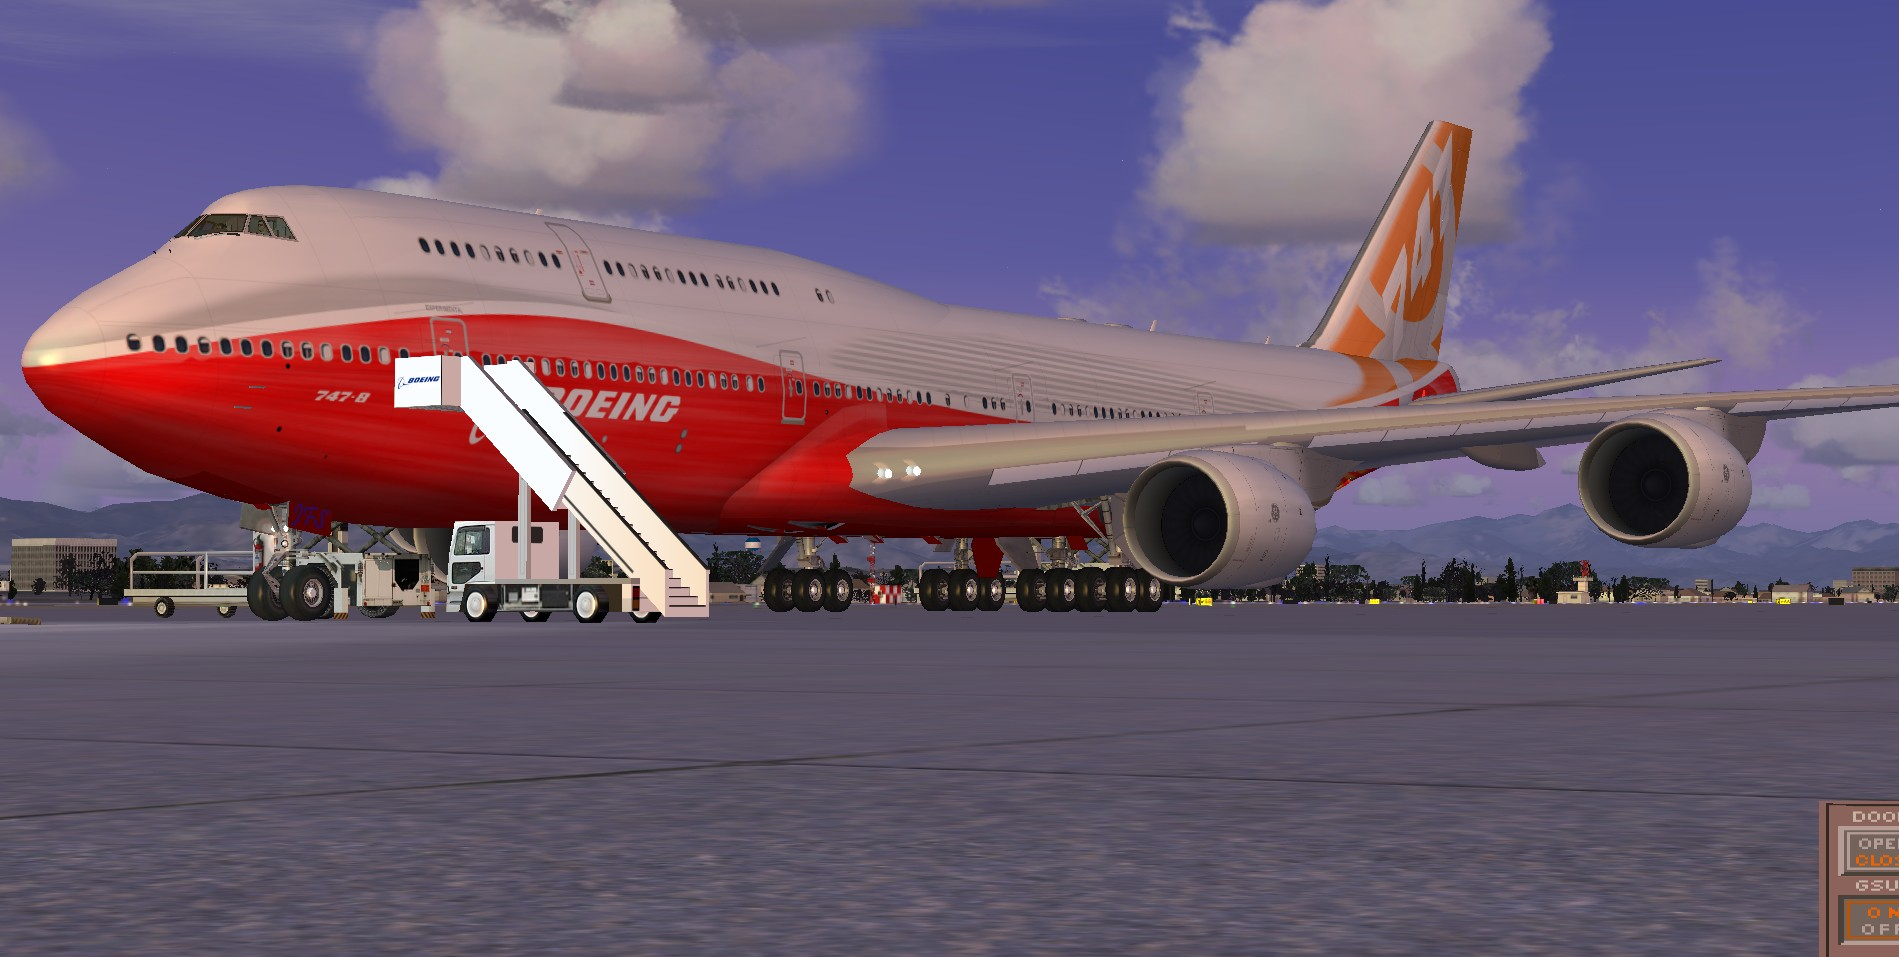 fs-freeware net - FSX Boeing 747-800i Roll Out Livery